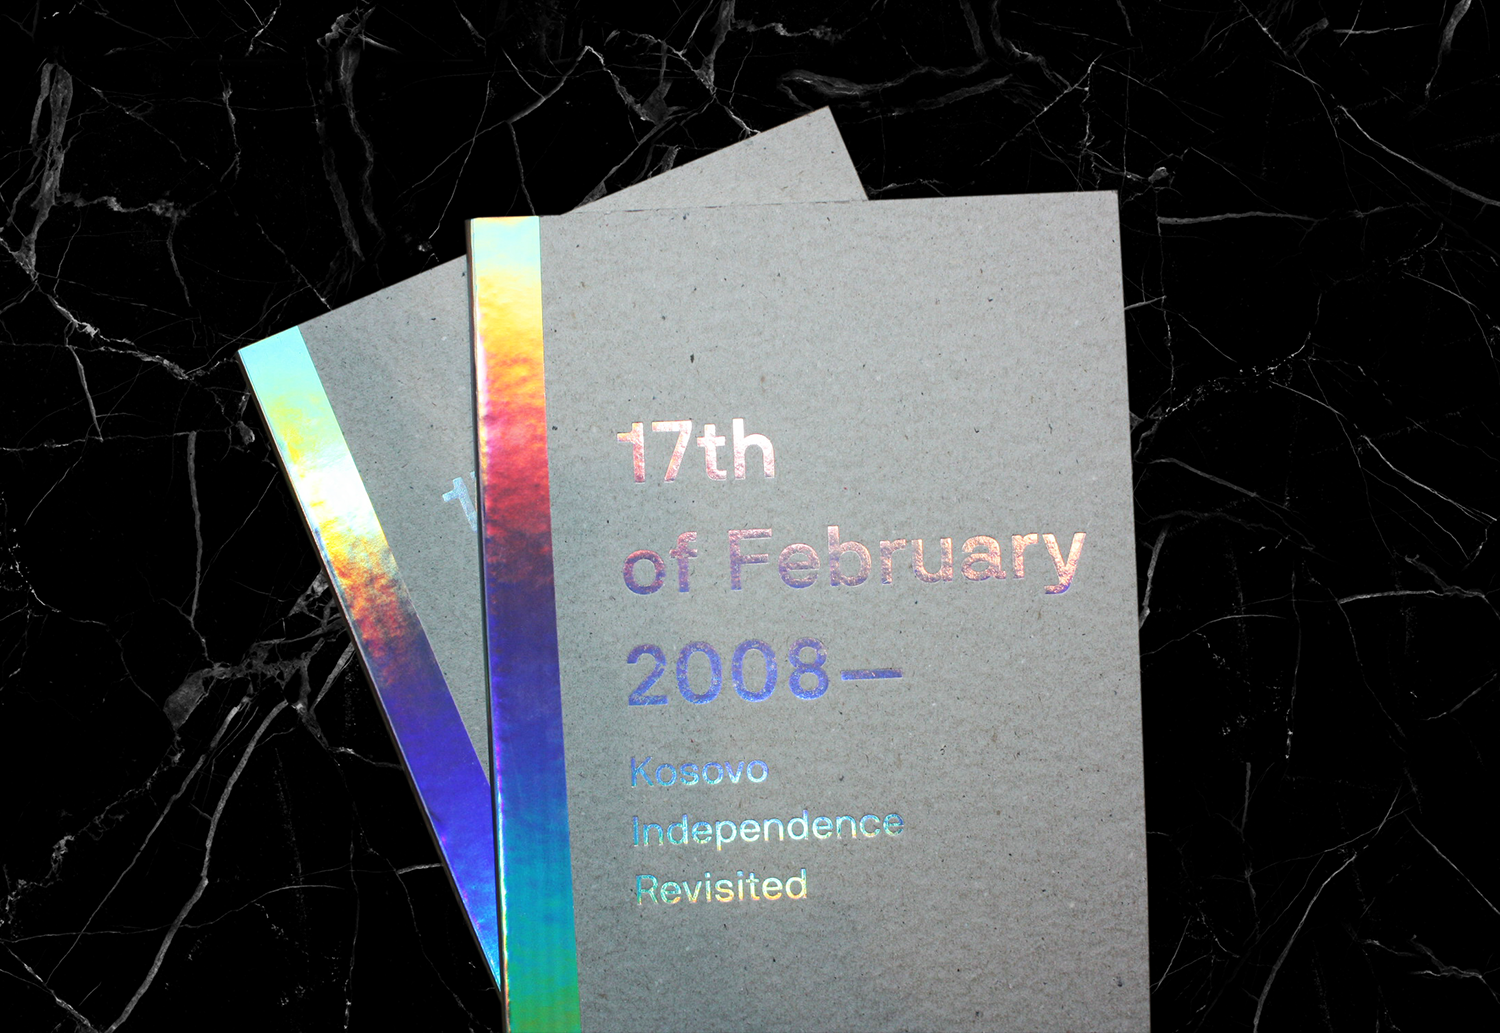 17th of February 2008